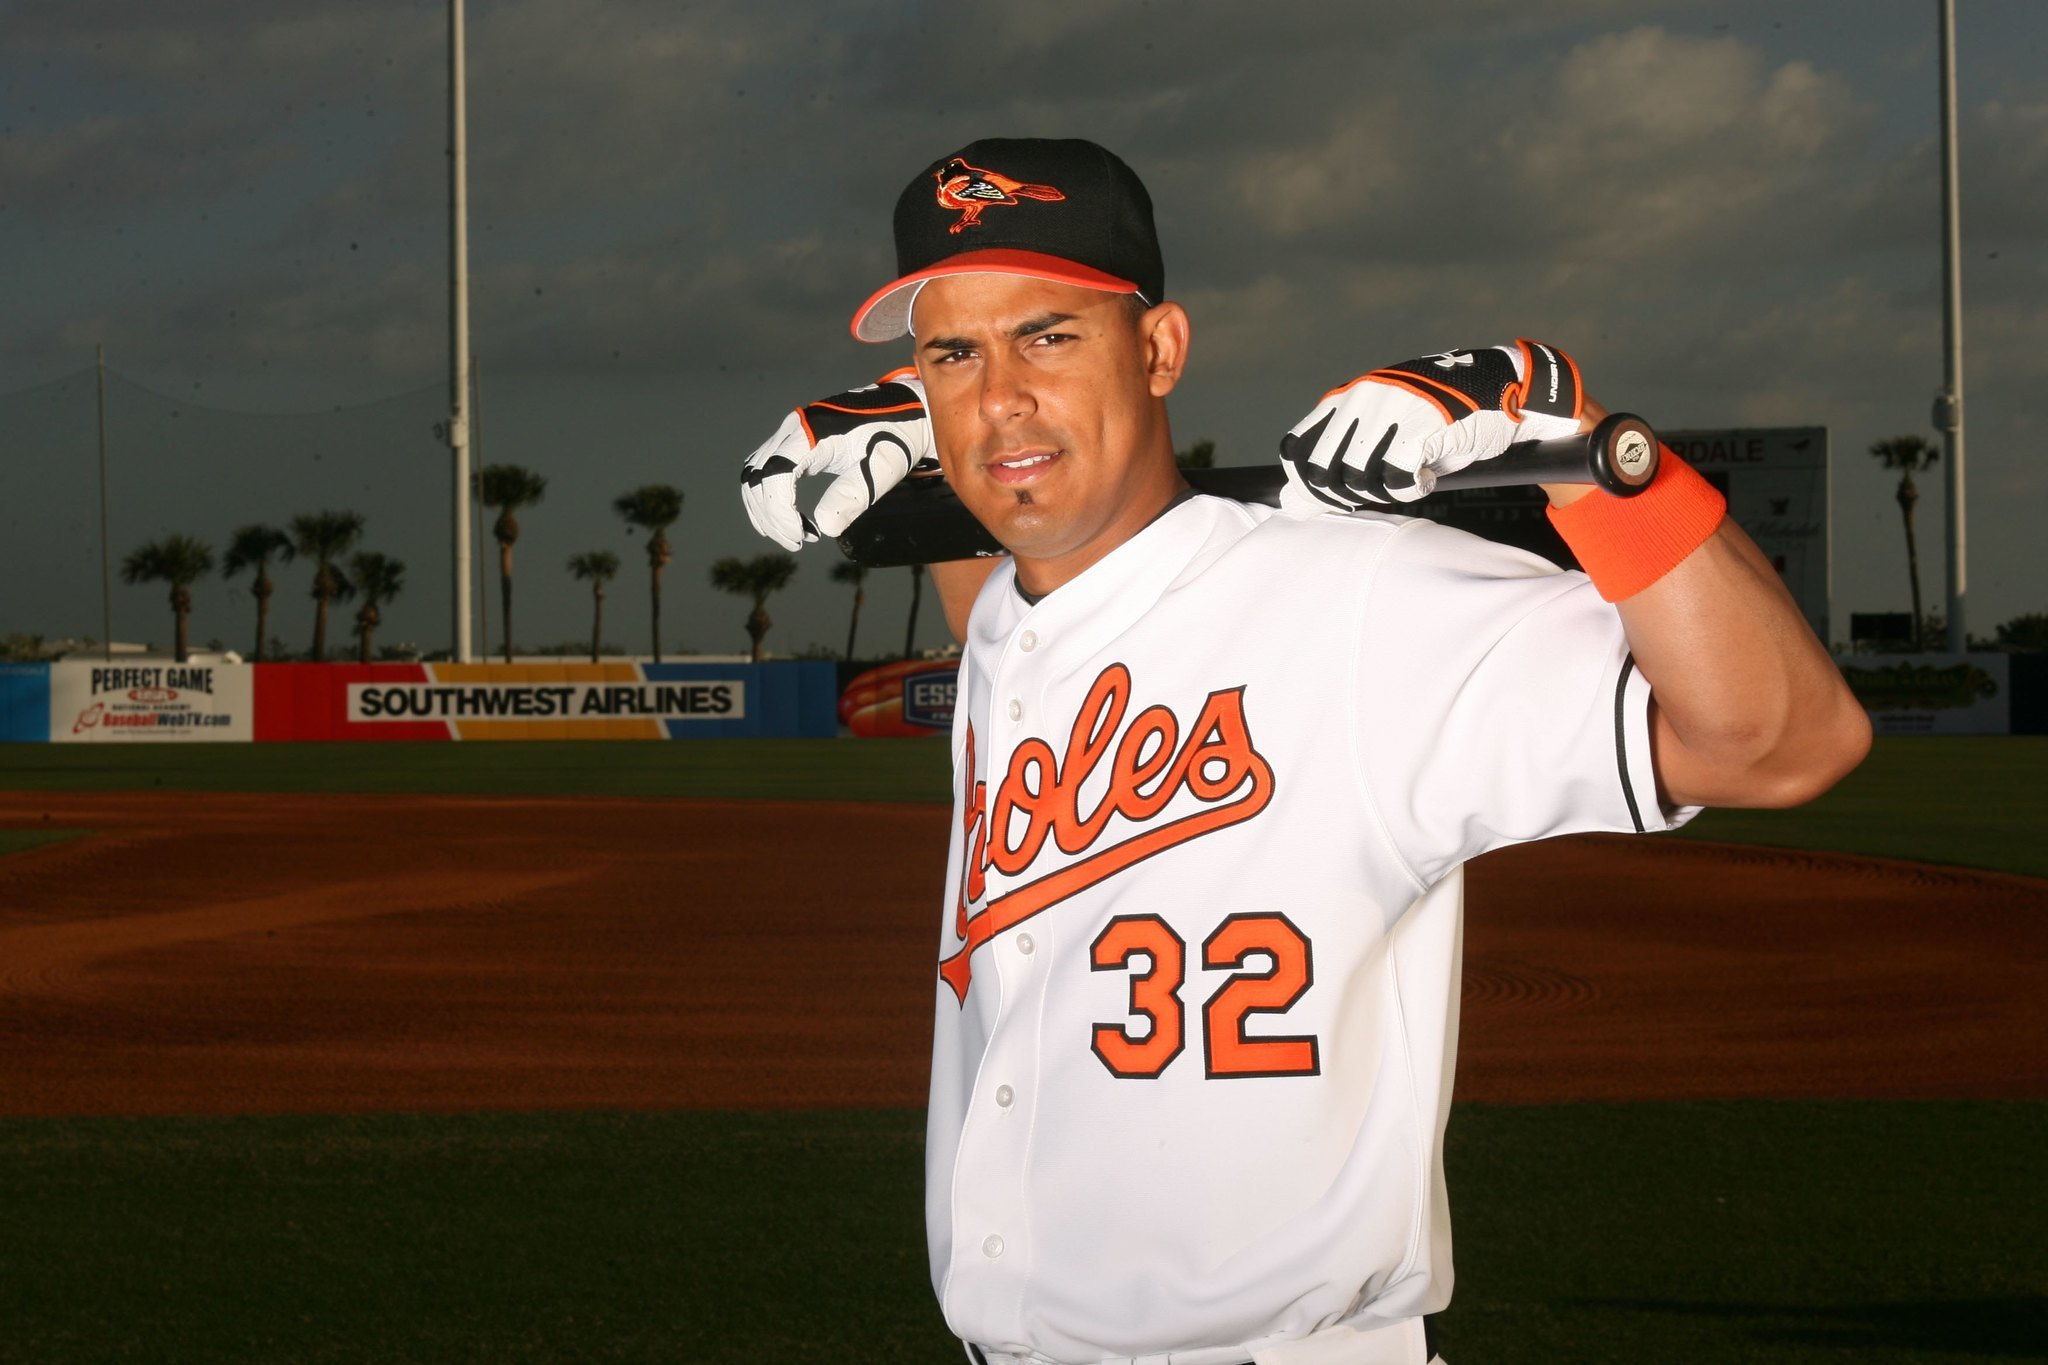 Bal-former-oriole-luis-matos-manages-puerto-rican-team-to-caribbean-series-title-20170208